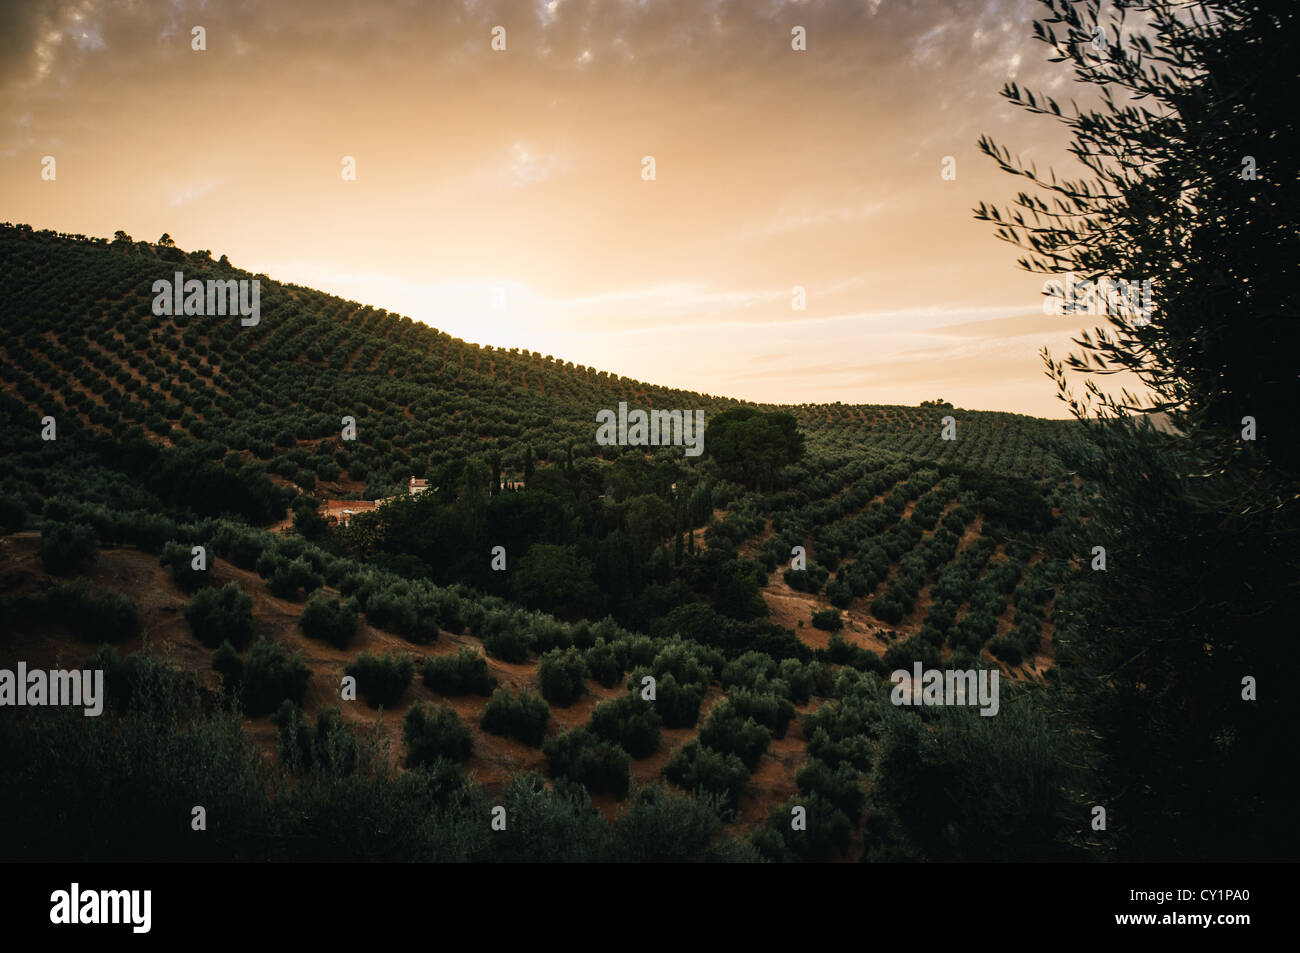 Olive trees as far as the eye can see at sunset in the mountains of Jaen, Andalucia. - Stock Image